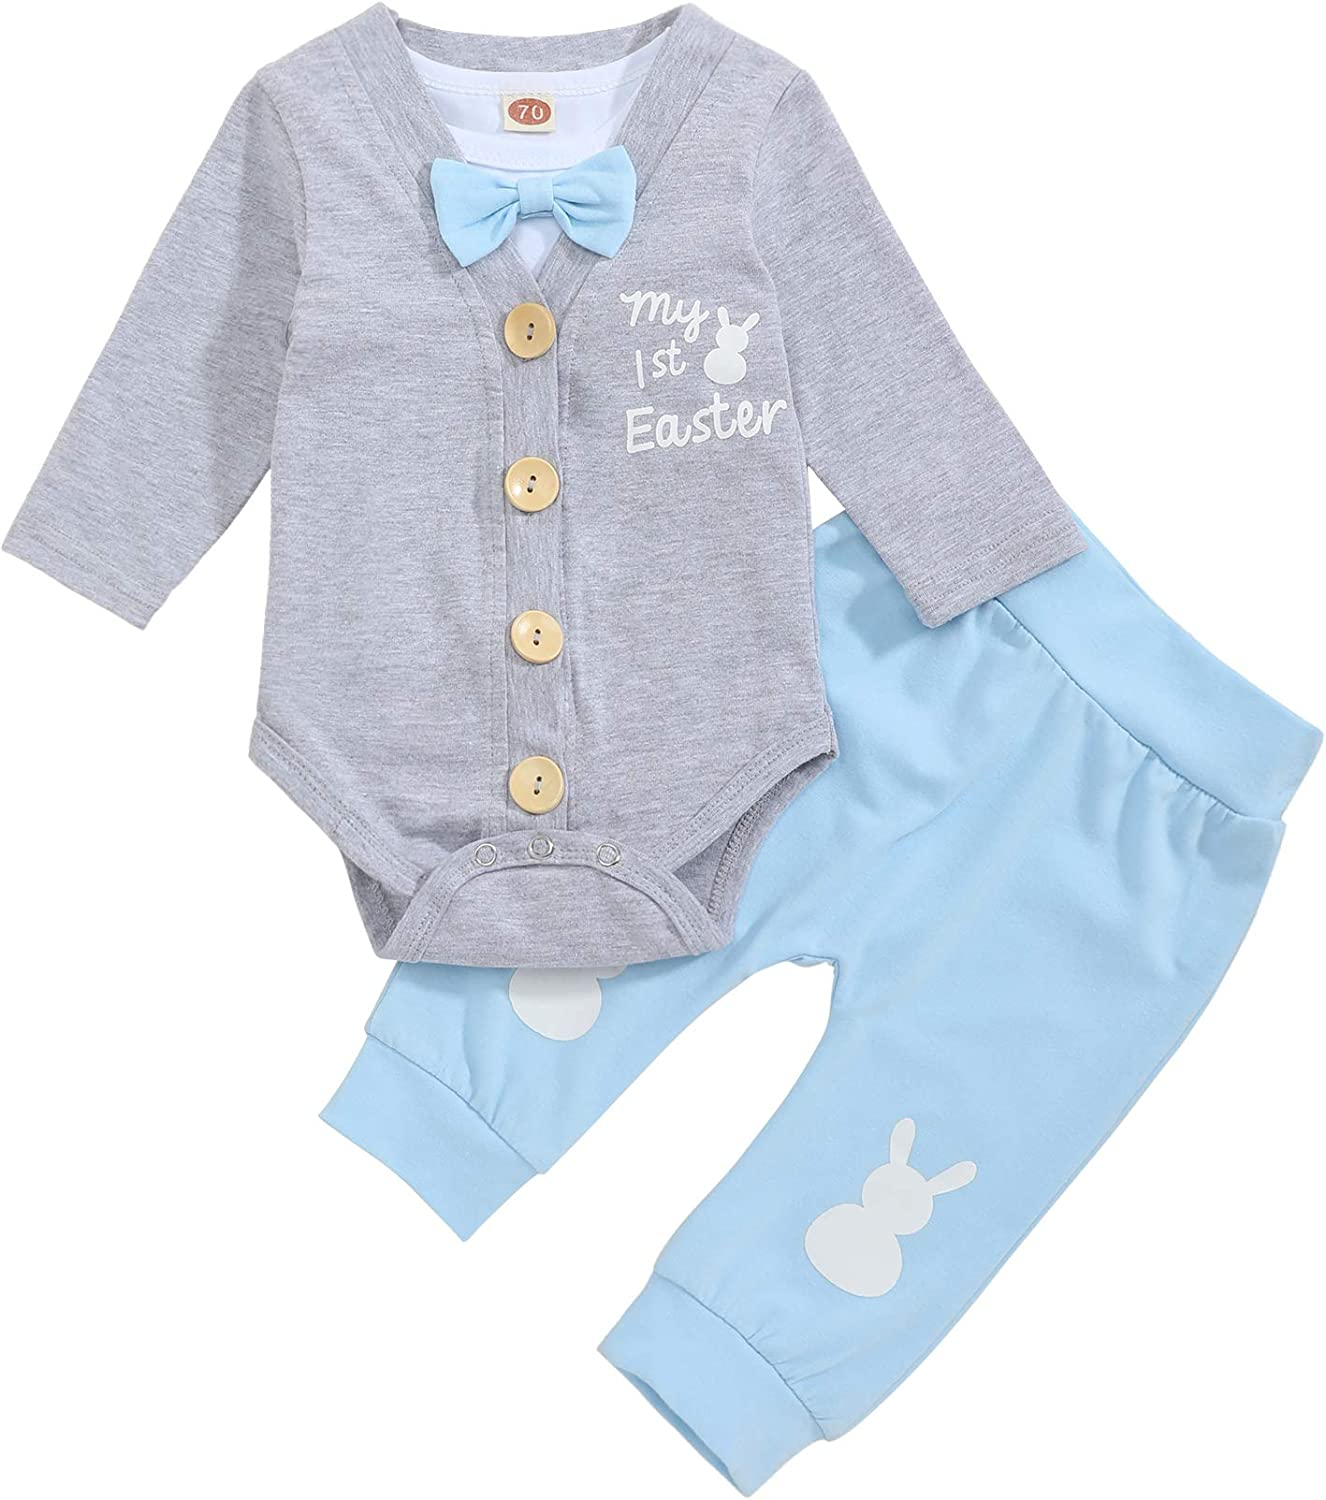 TUEMOS Newborn Infant Baby Boy Easter Clothes Gentleman Romper with Bow-Tie+Coat+Bunny Pants Baby Boy My First Easter Outfits